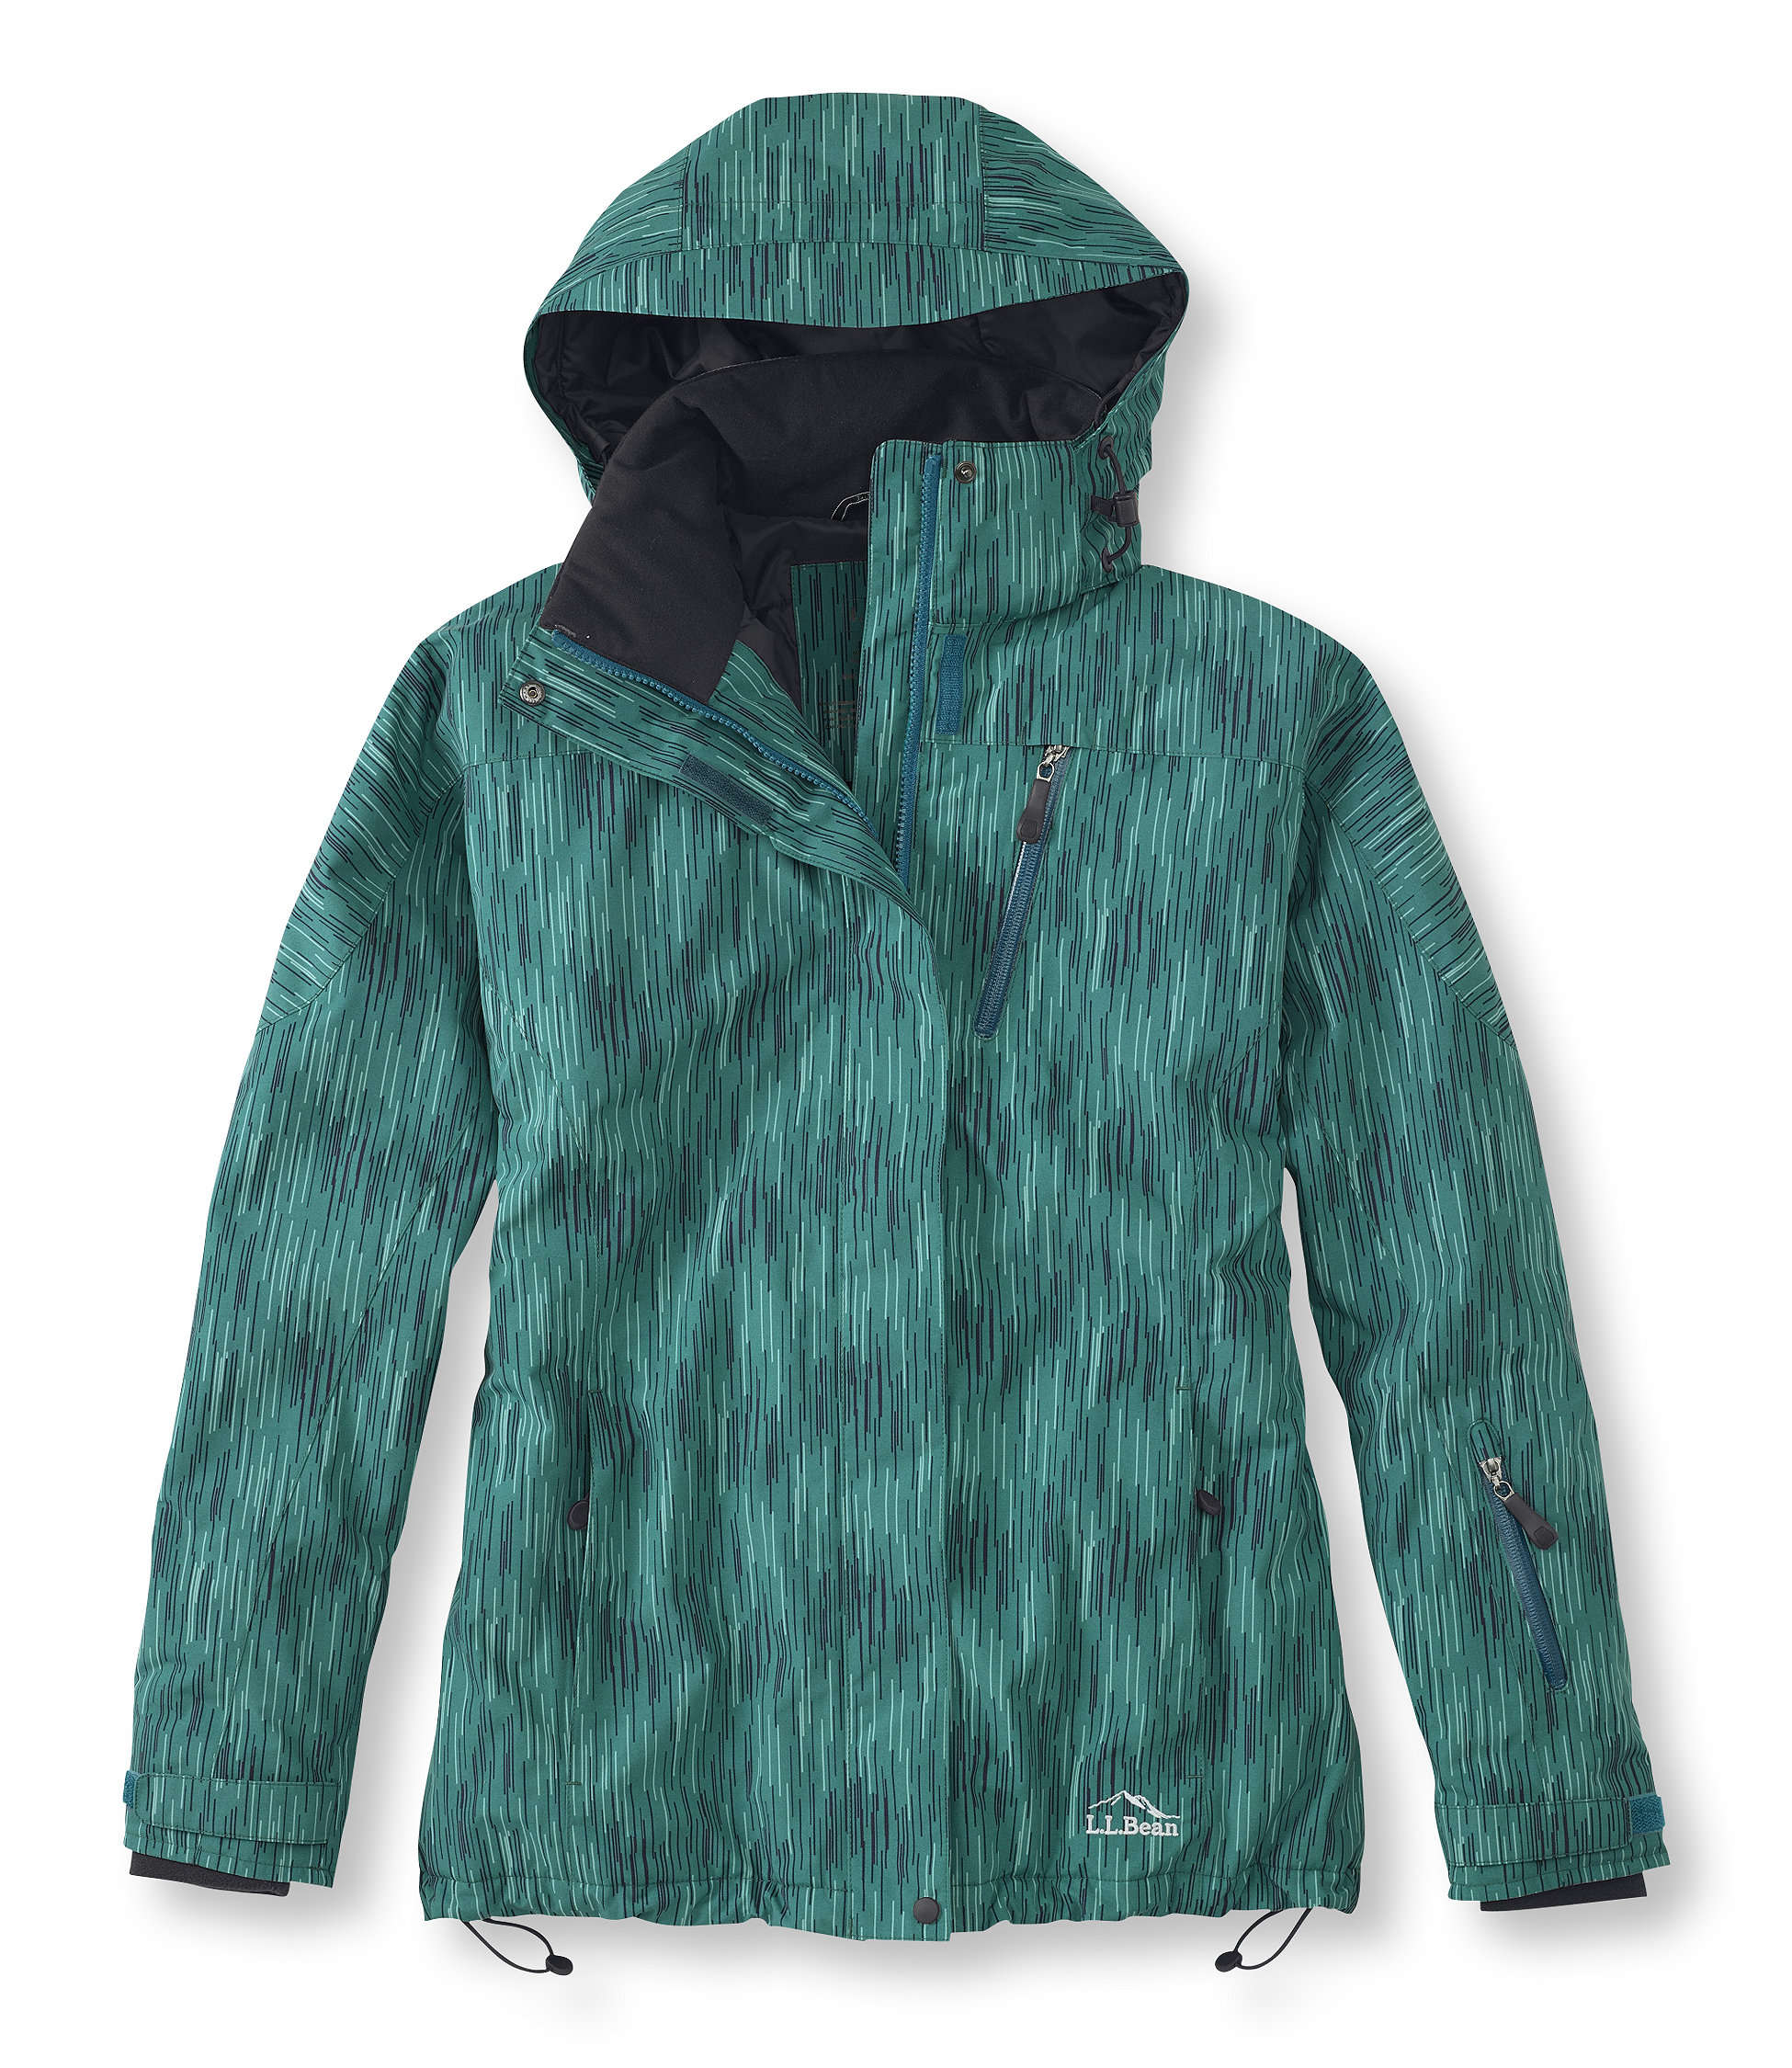 L.L.Bean Wildcat Jacket